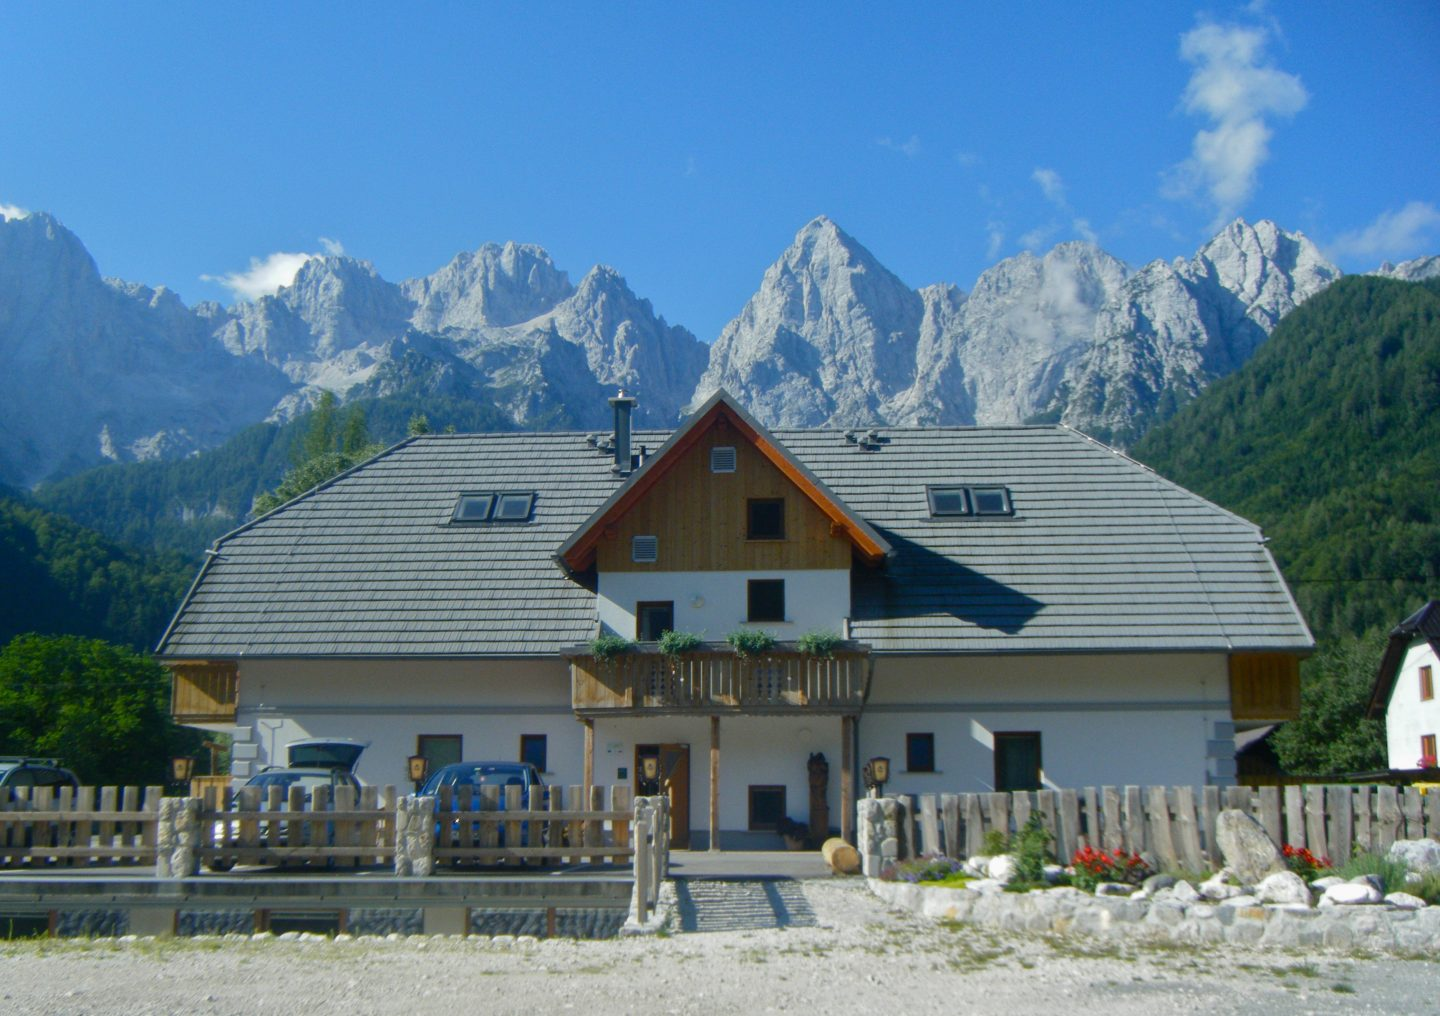 Review of Garni Hotel Rute in Kranjska Gora Slovenia